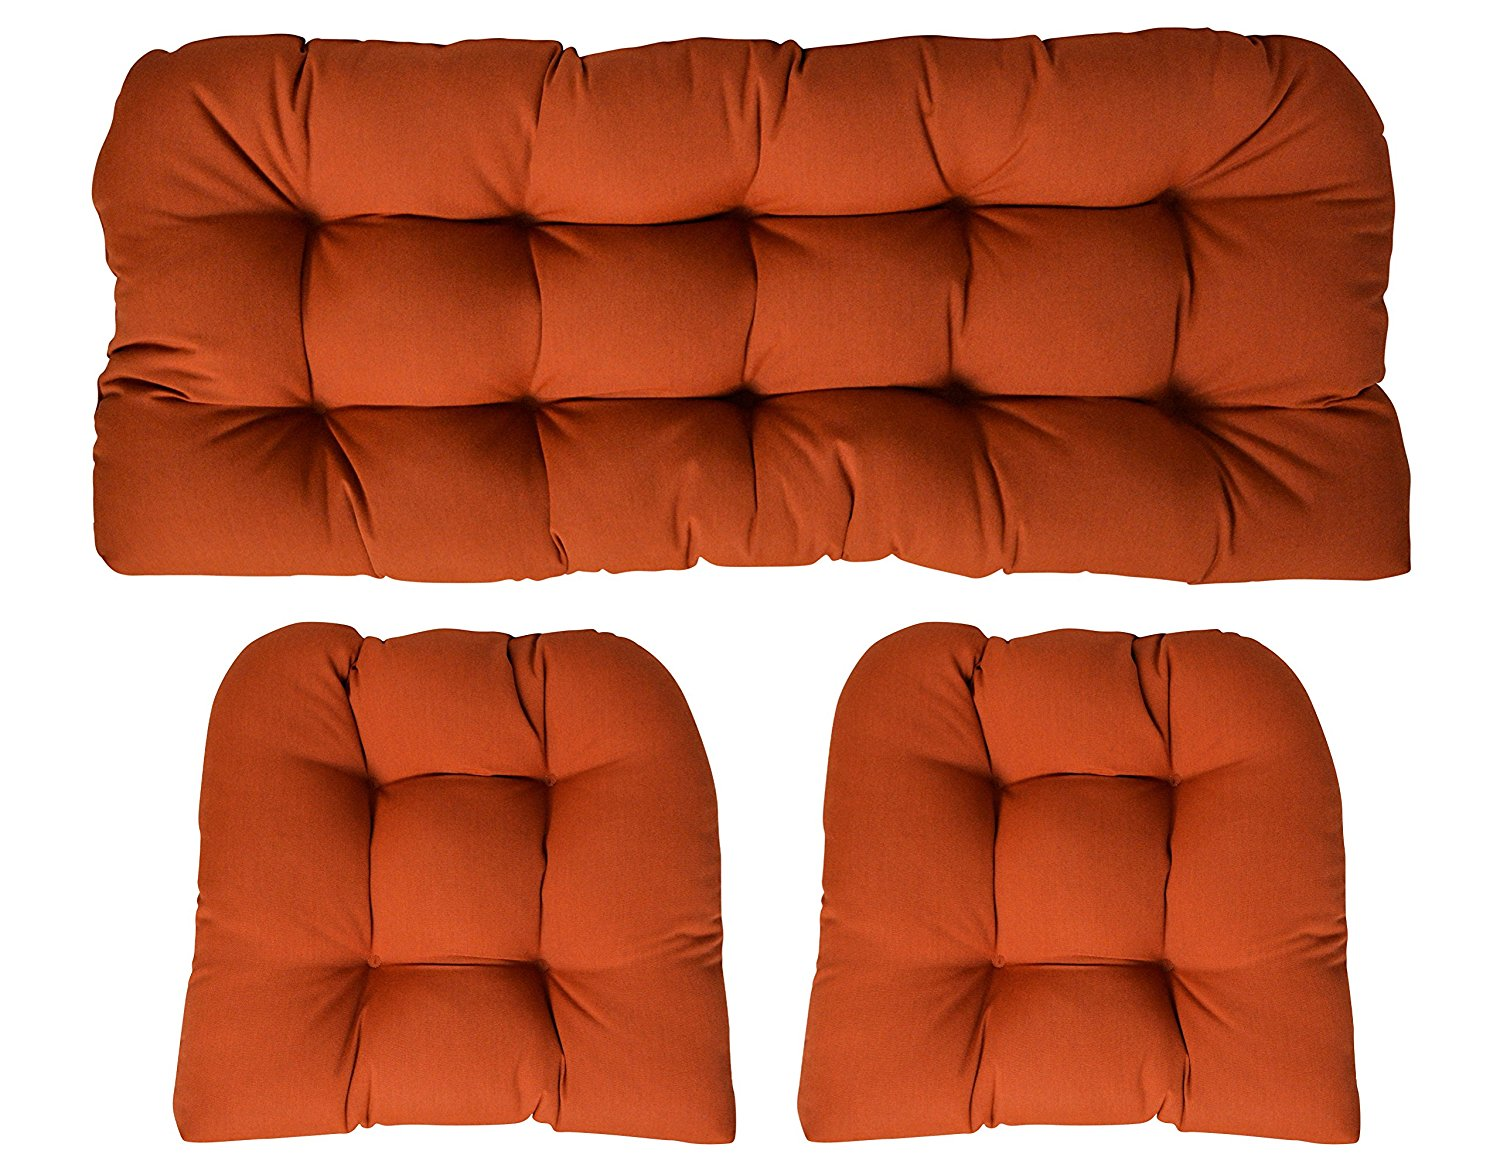 RSH Decor Sunbrella Canvas Rust 3 Piece Wicker Cushion Set - Indoor/Outdoor Wicker Loveseat Settee & 2 Matching Chair Cushions